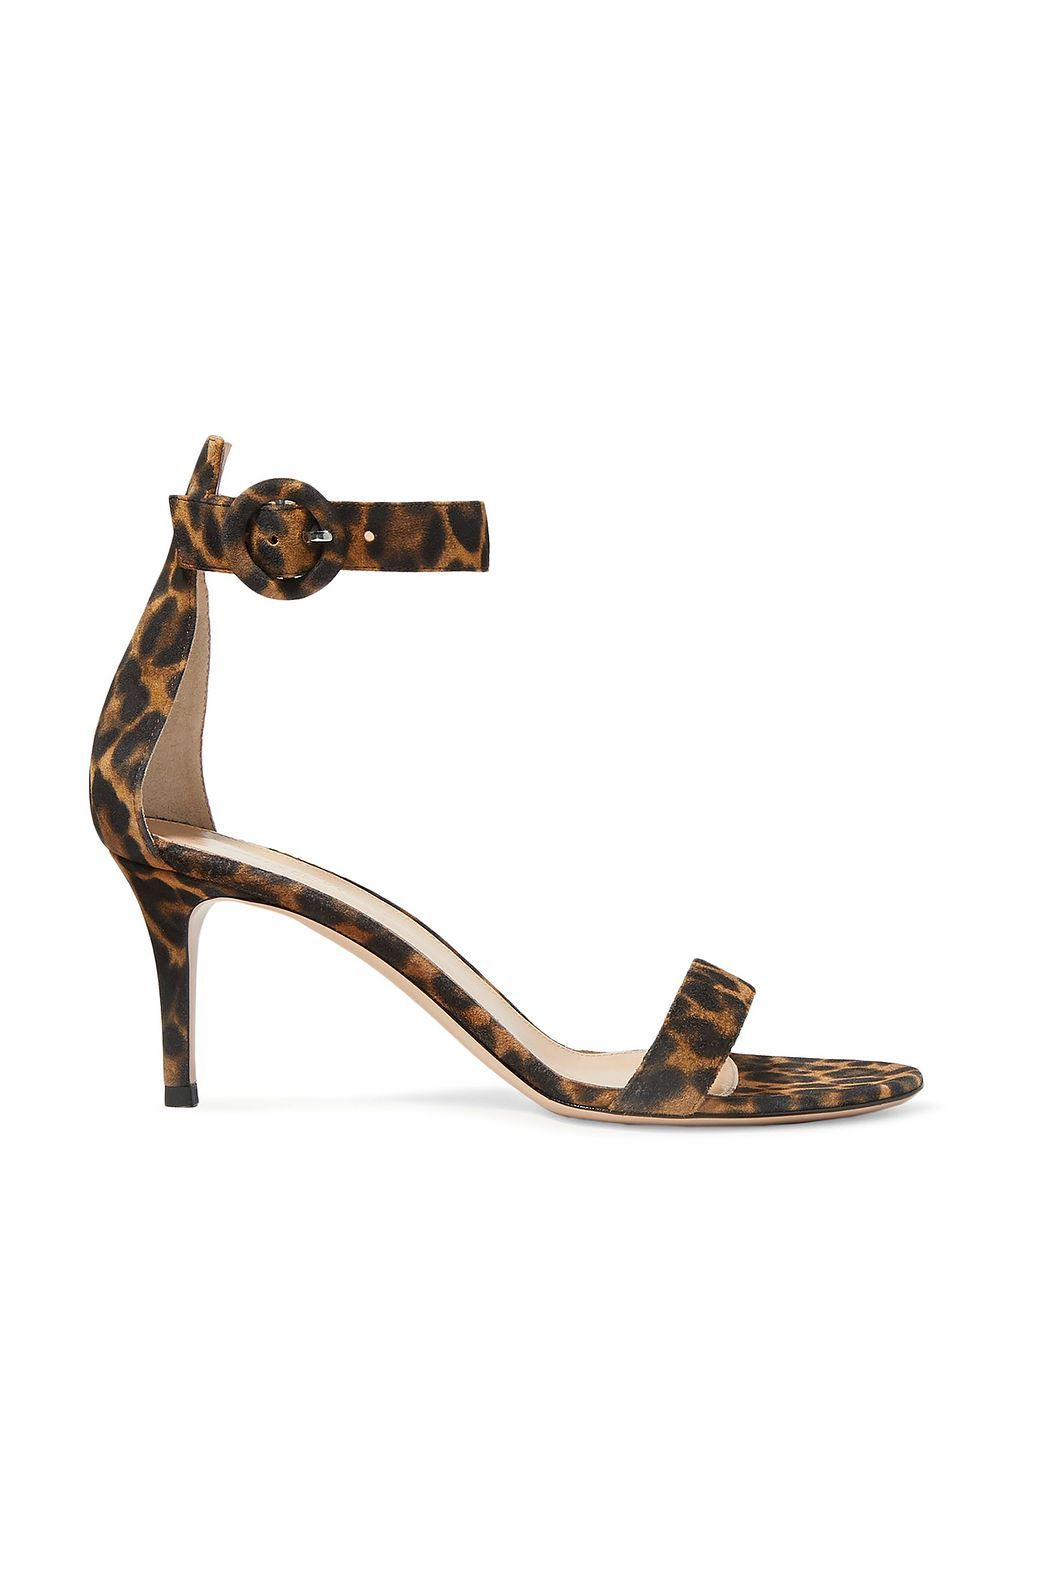 Portofino 70 Leopard Print Suede Sandals Sale Up To 70 Off The Outnet Gianvito Rossi In 2020 Sandals For Sale Suede Sandals Mid Heel Sandals